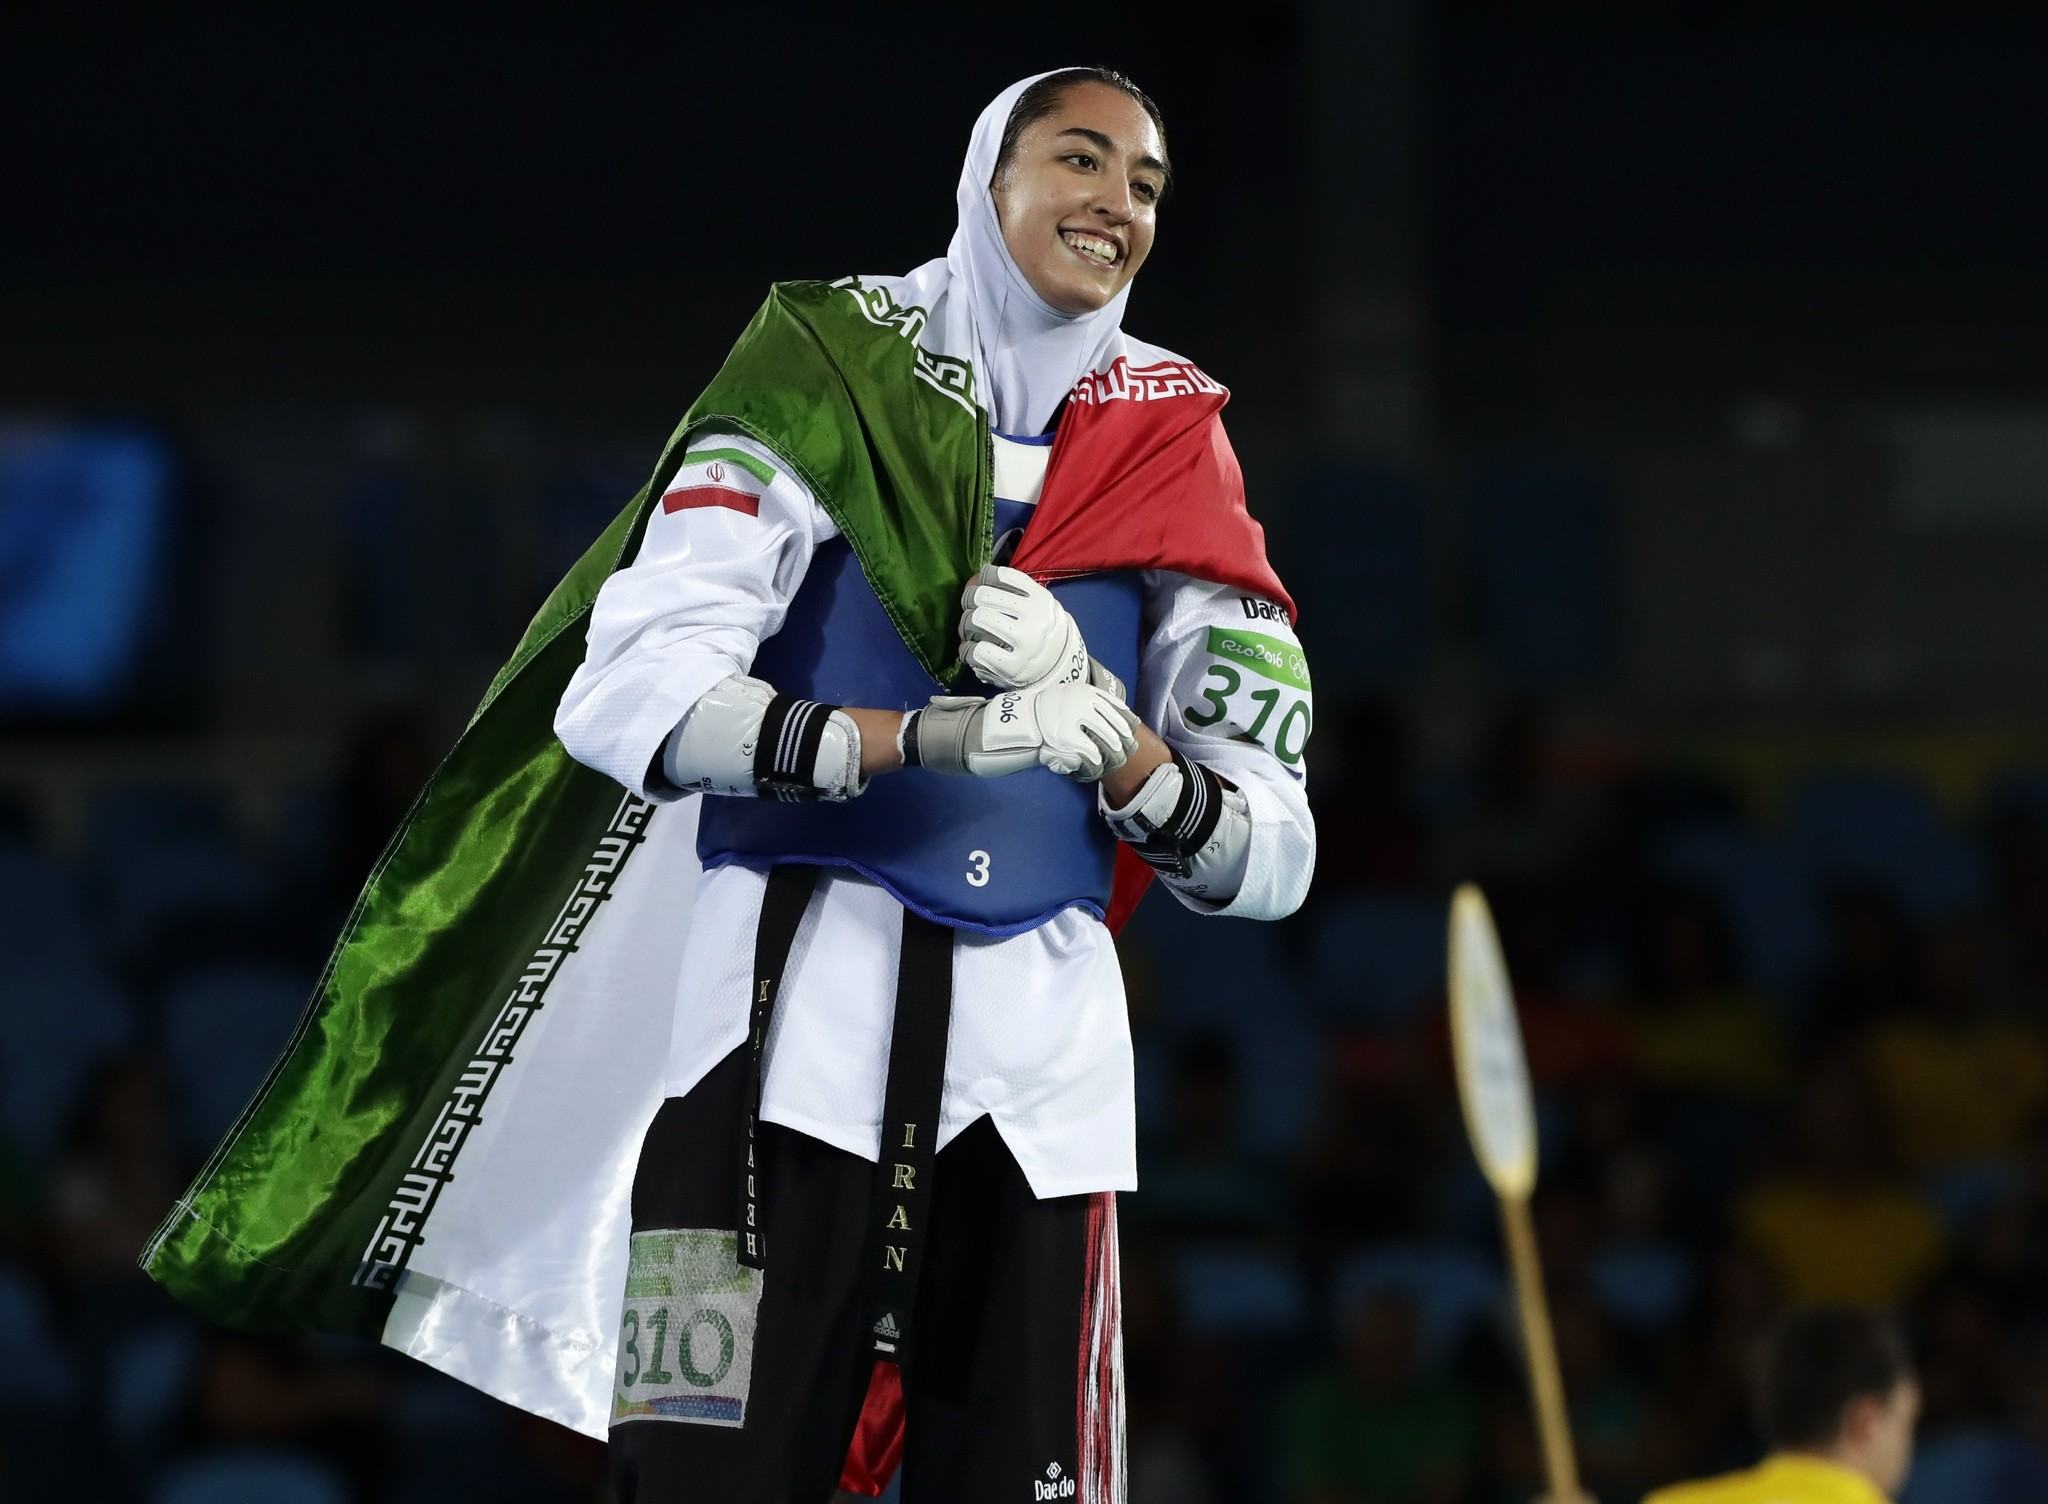 Kimia Alizadeh Zenoorin, of Iran, celebrates after winning a bronze medal in women's 57-kg taekwondo competition at the 2016 Summer Olympics in Rio de Janeiro, Brazil, Thursday, Aug. 18, 2016. (AP Photo)